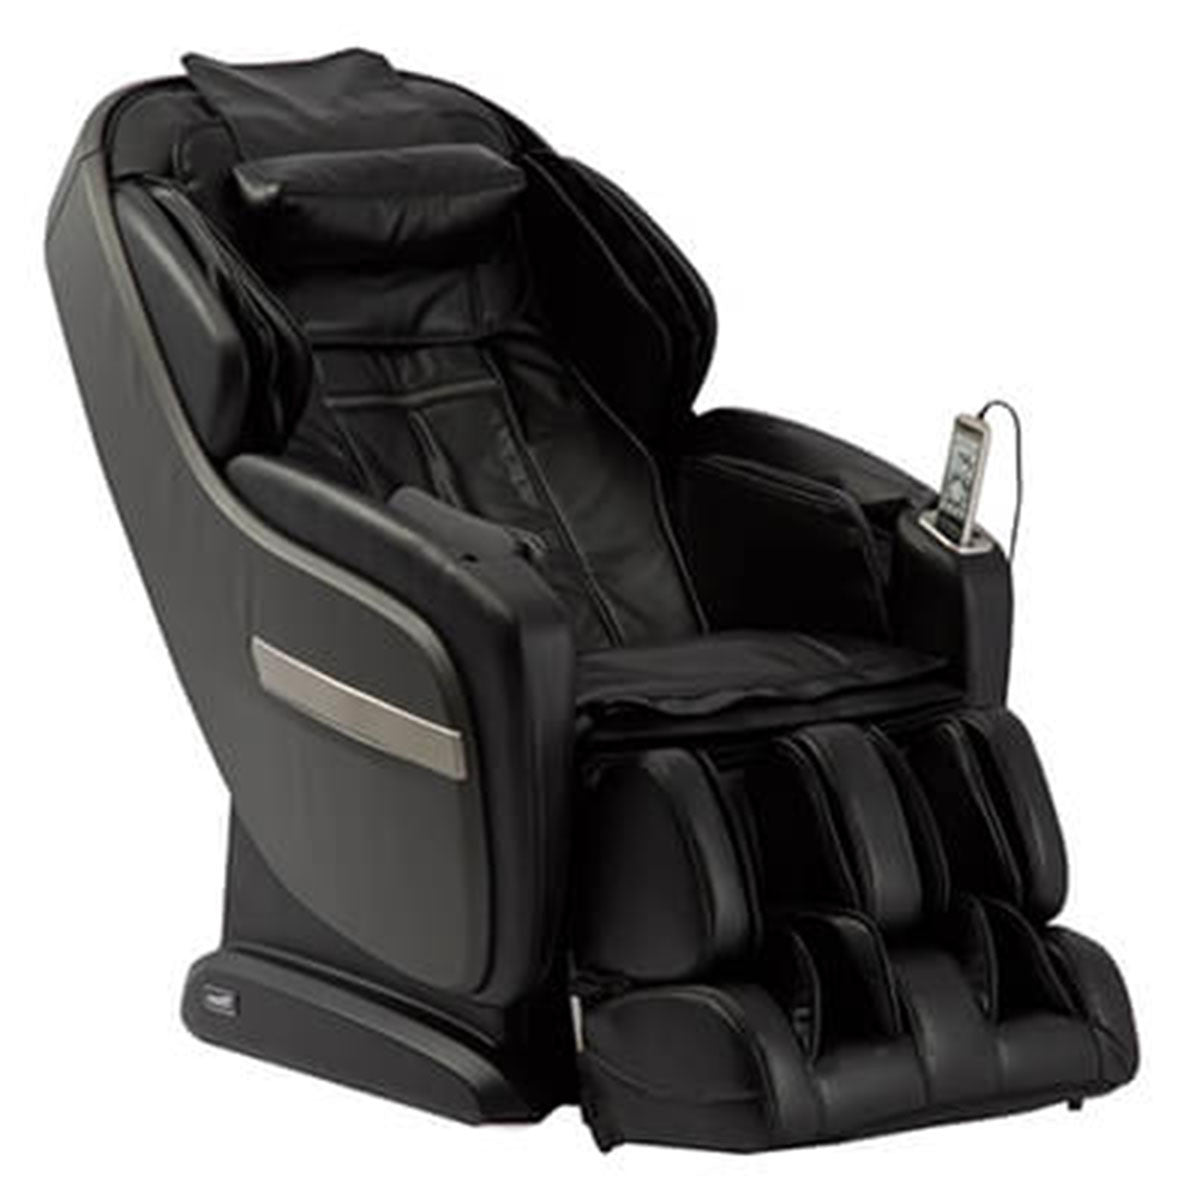 titan os pro summit massage chair - Massage Chair For Sale